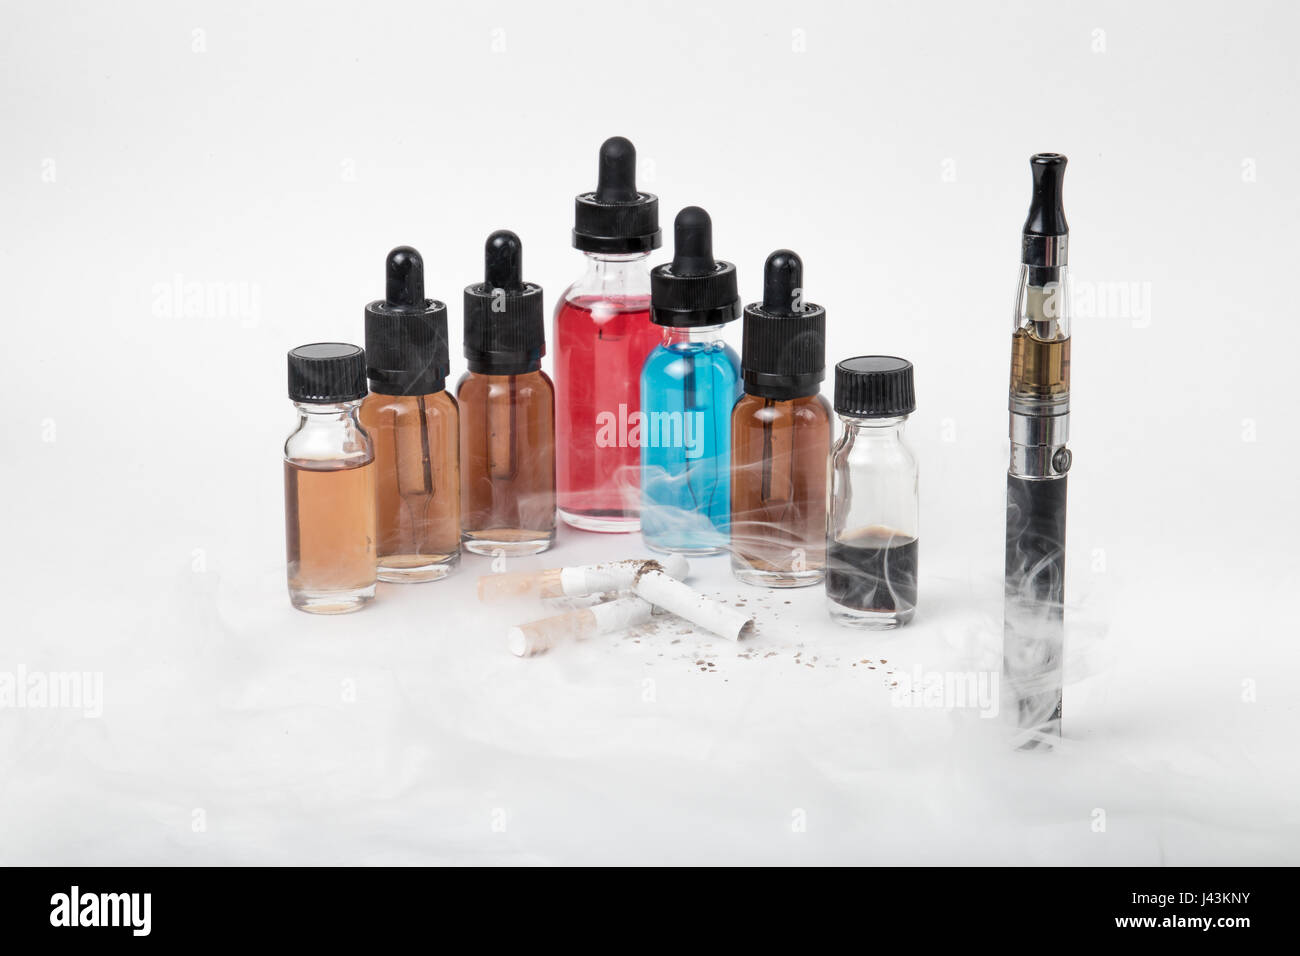 Many bottles of e-juice and vaporizer with lots of smoke - Stock Image